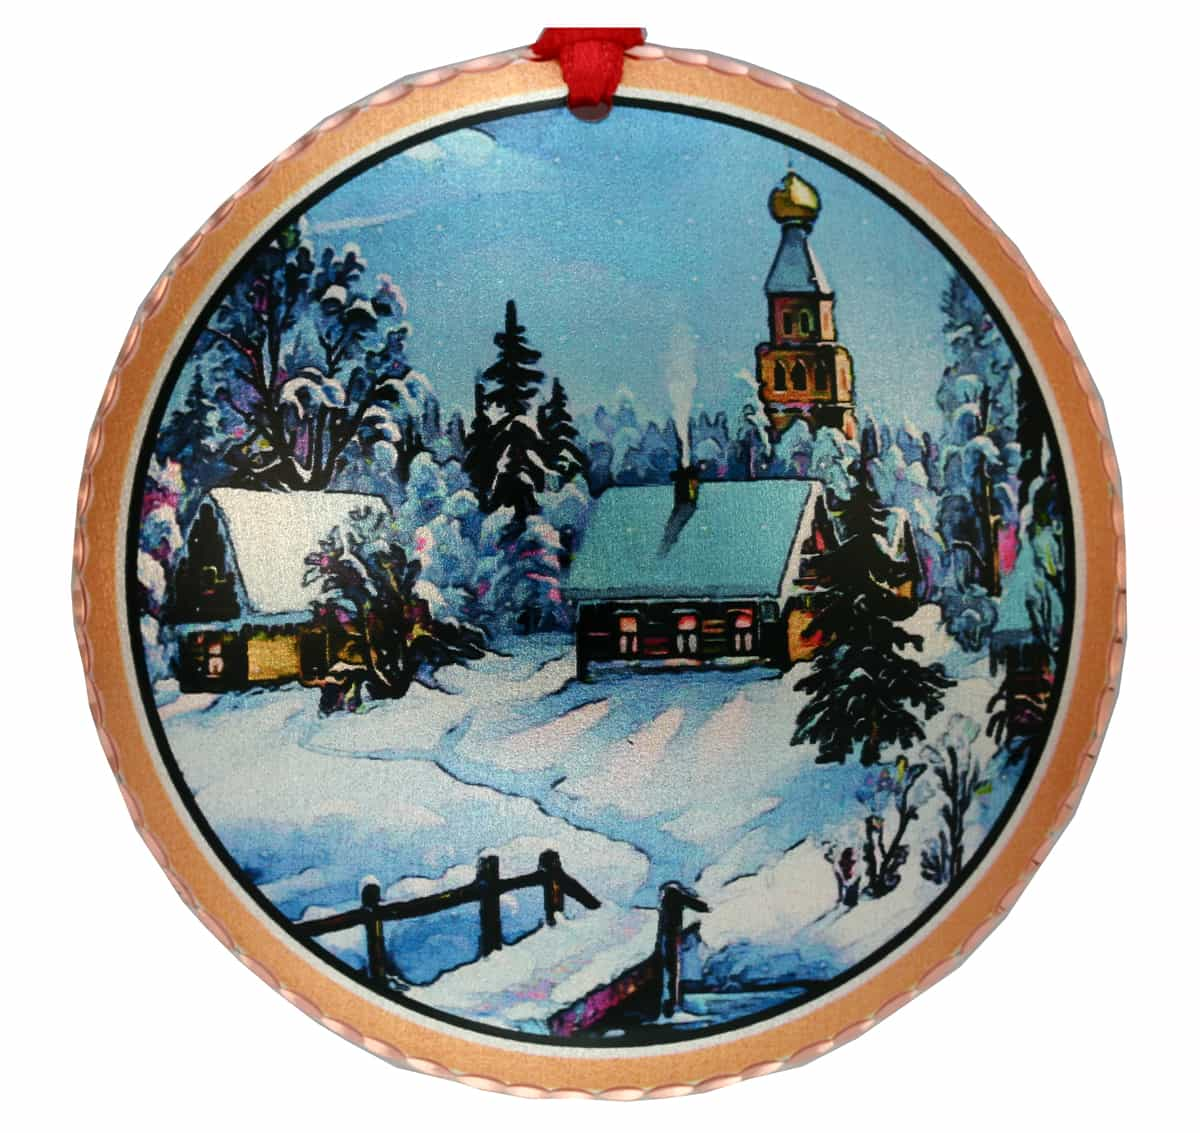 Handcrafted Christmas Tree Ornament Created in Colorful Winter Town Scene